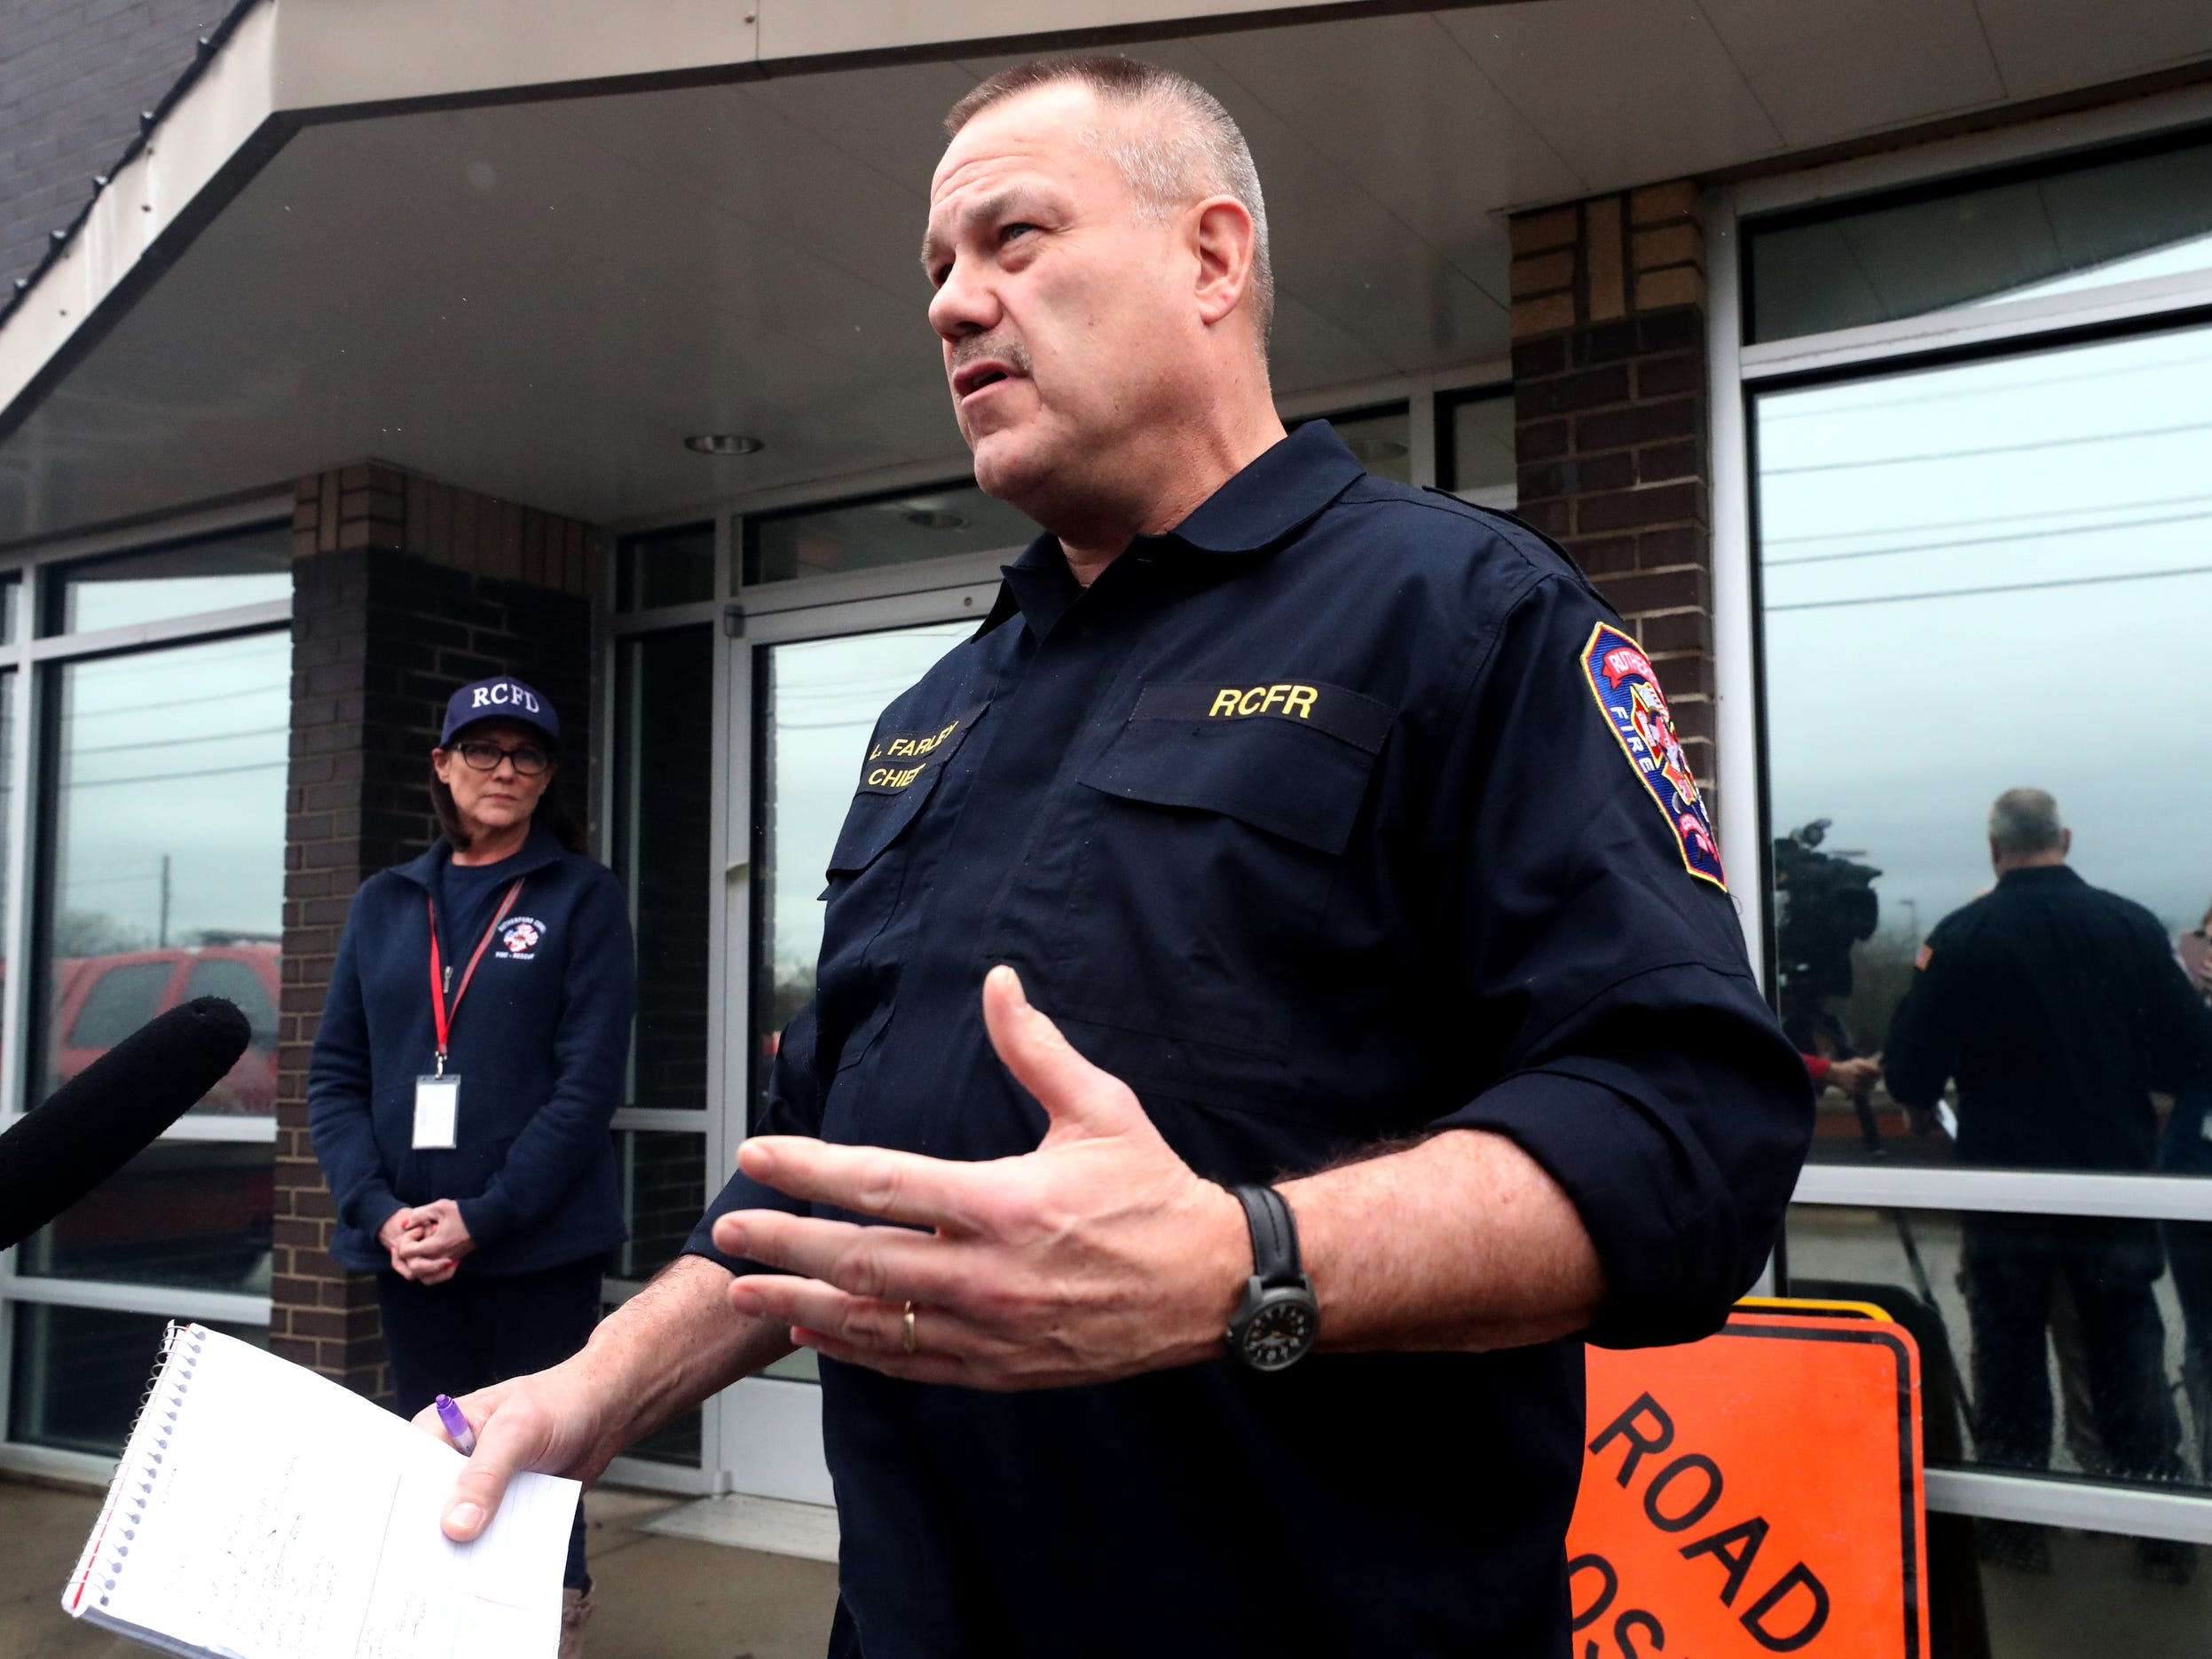 Rutherford County Fire Chief Larry Farley informs media of particular roads that are of concern for flooding during a press conference at a fire station in Murfreesboro.